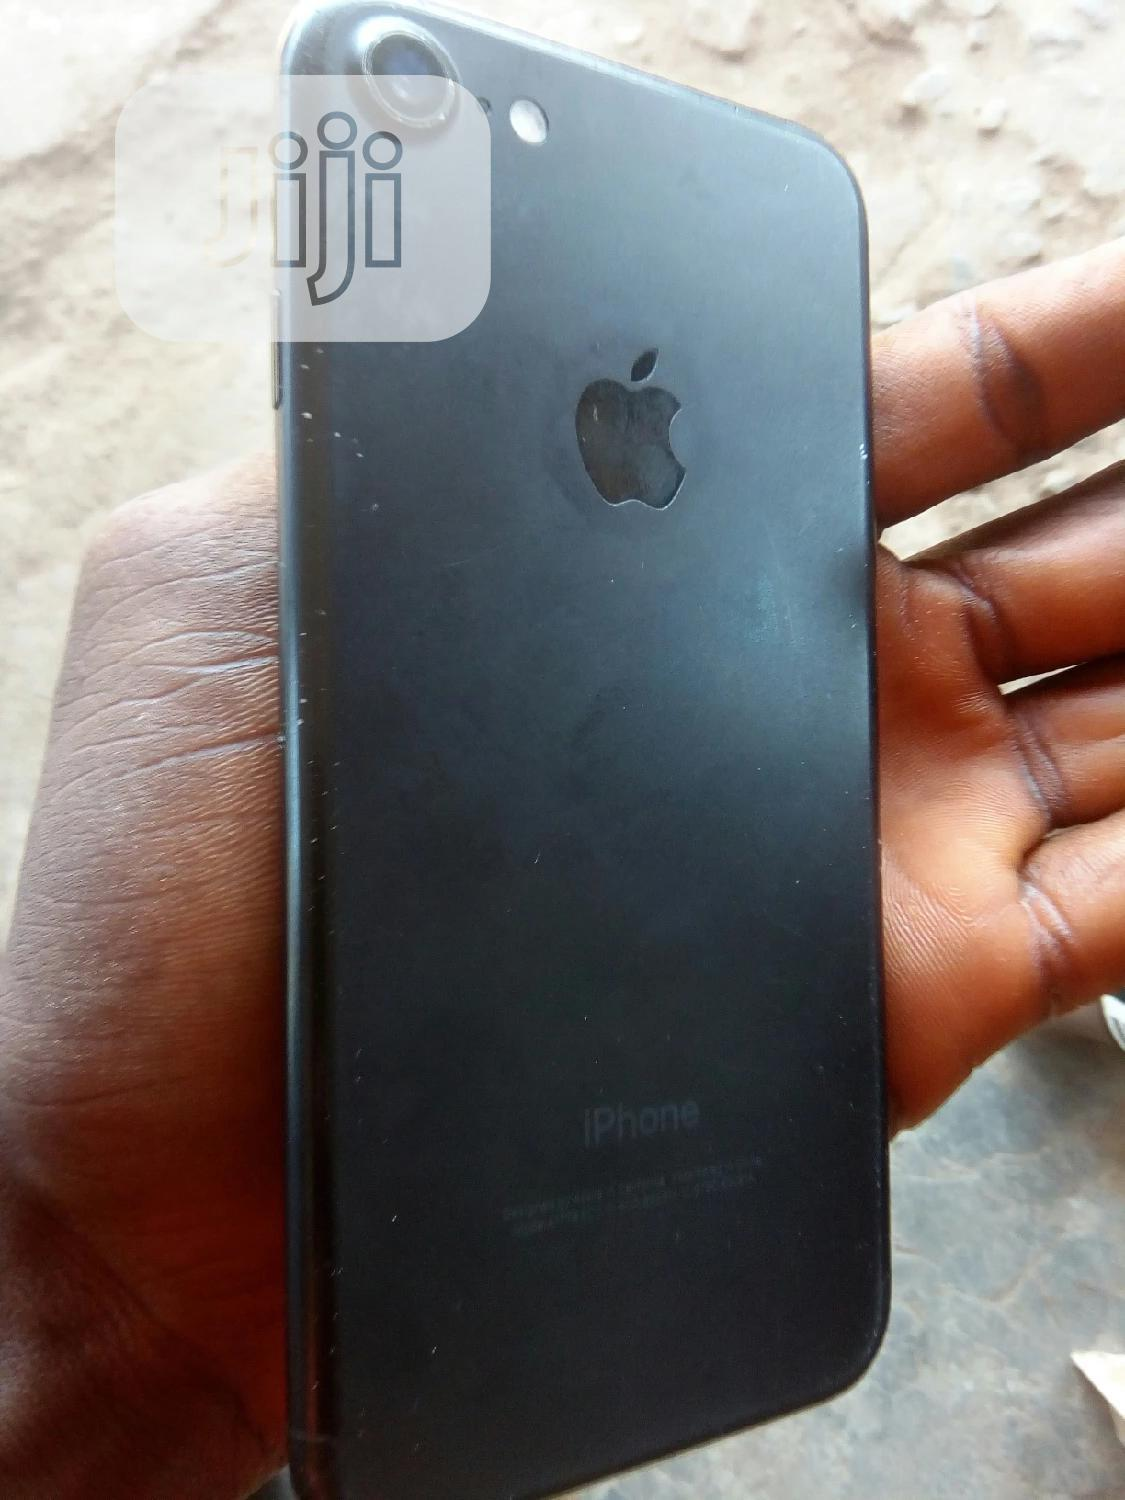 Apple iPhone 7 32 GB Black | Mobile Phones for sale in Ilorin East, Kwara State, Nigeria